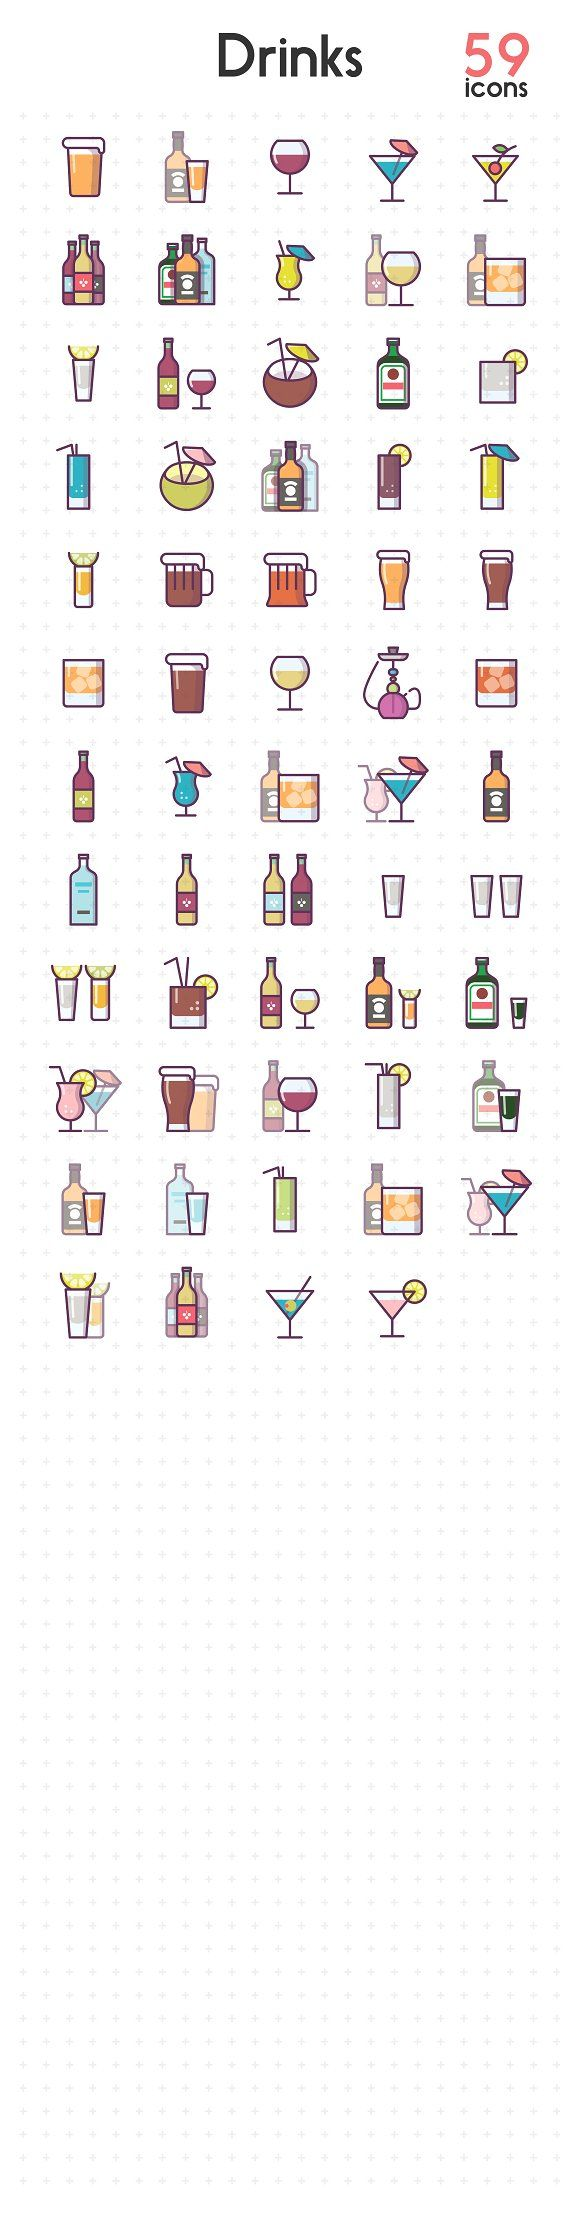 Alcohol Drinks  by sergei.kokota on @creativemarket